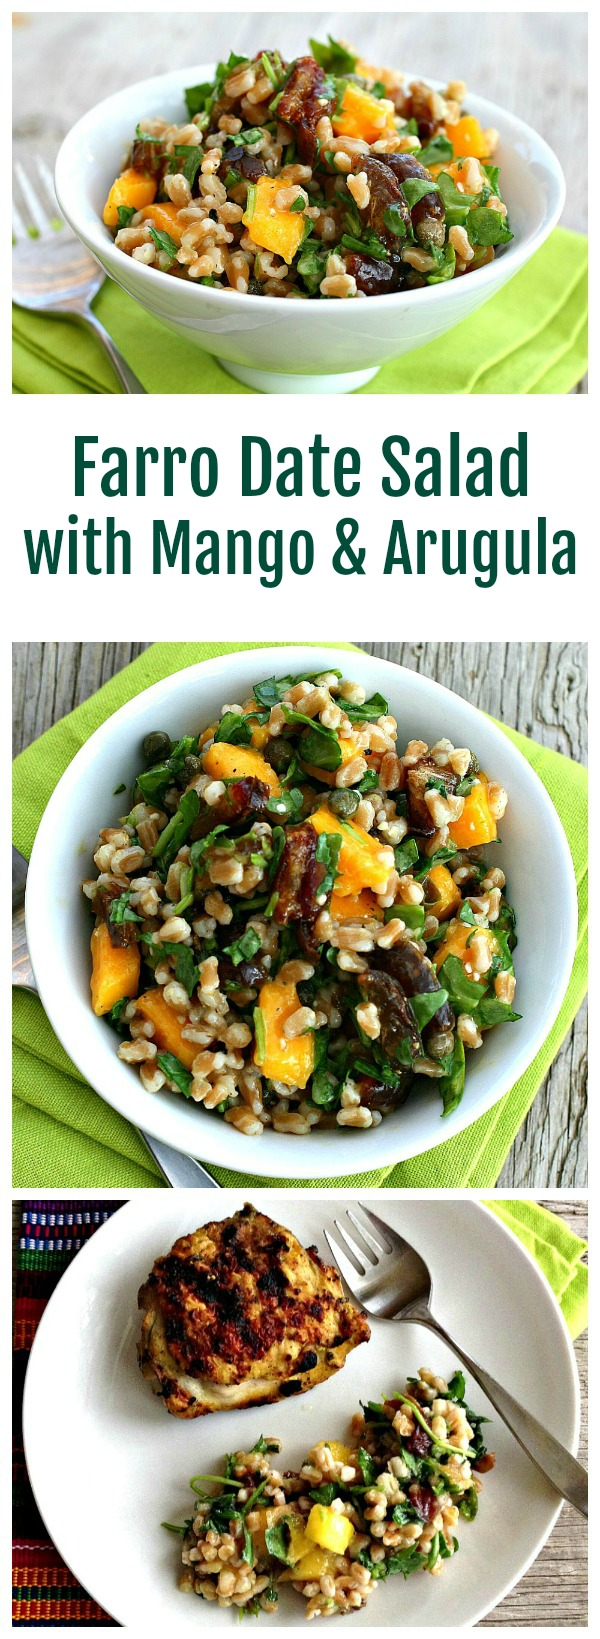 Farro Date Salad with Mango and Arugula recipe on Shockinglydelicious.com